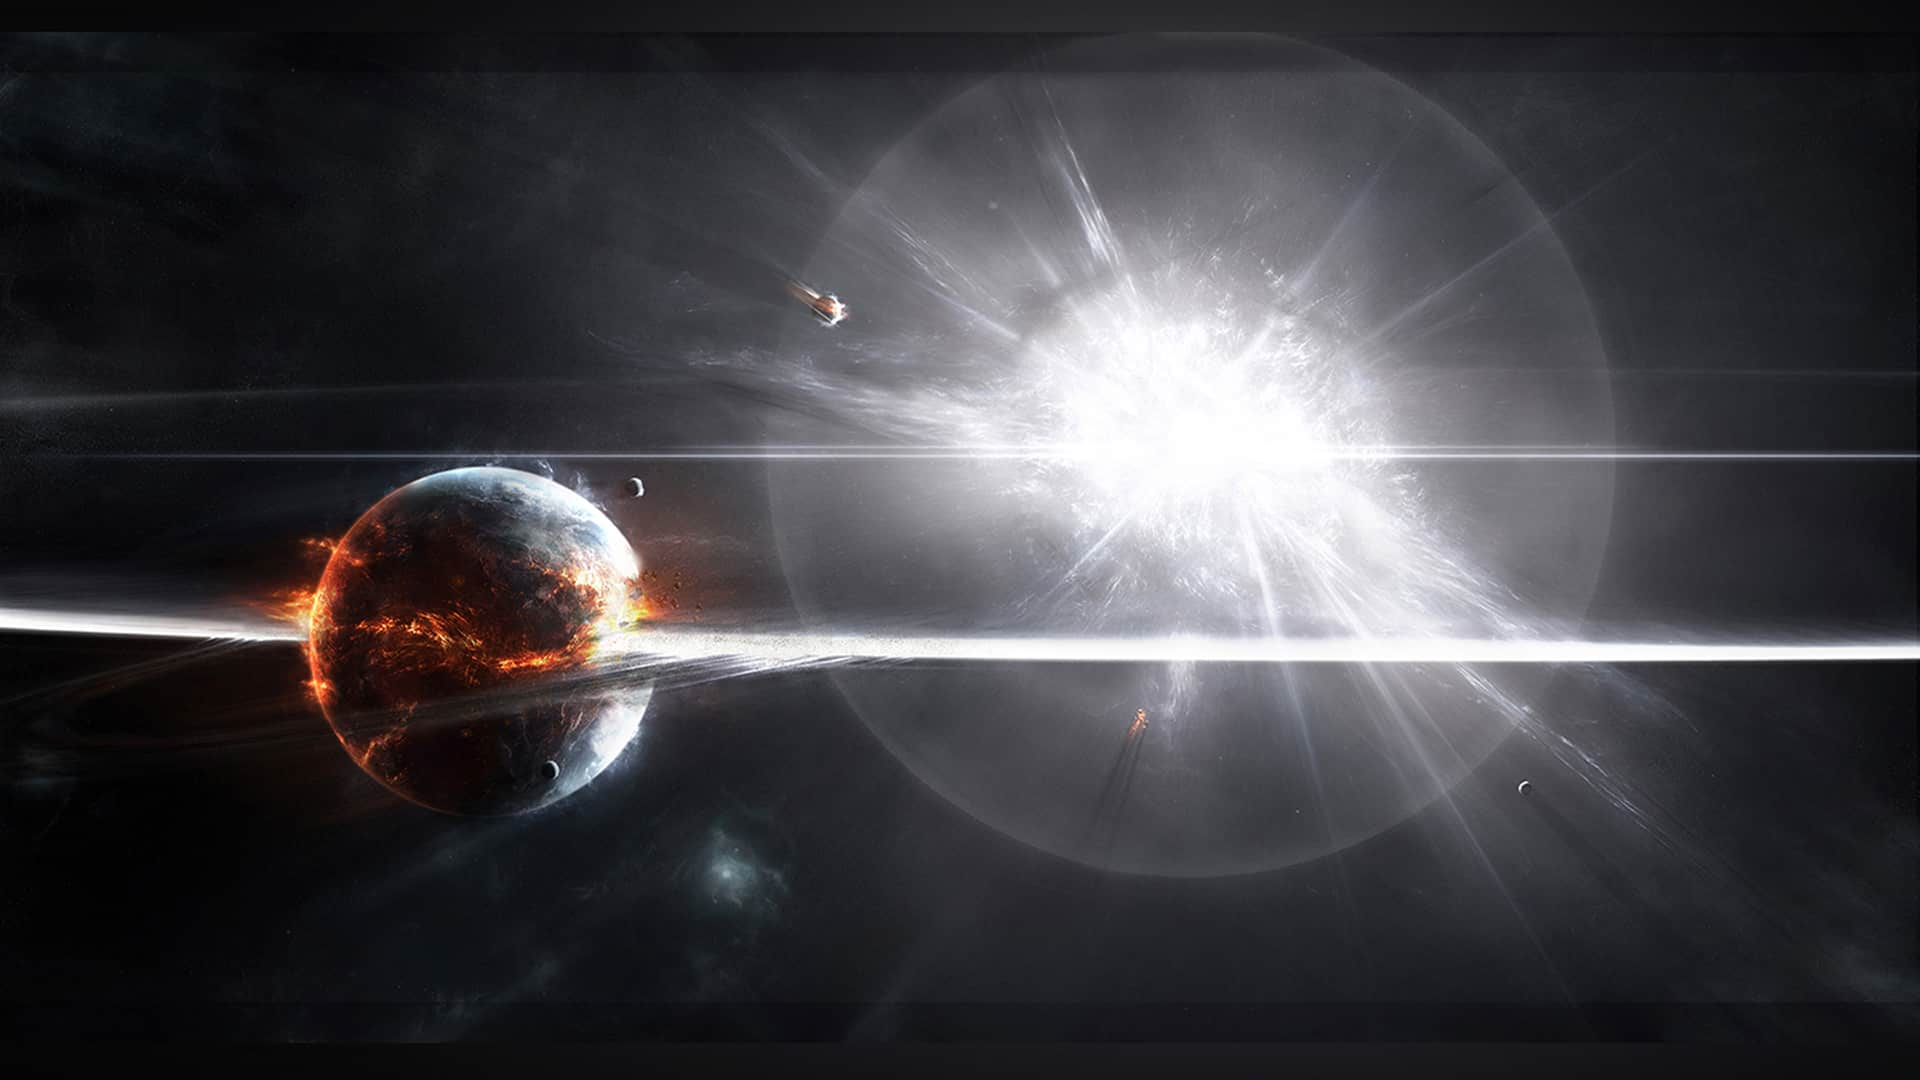 Supernova – doomsday scenario